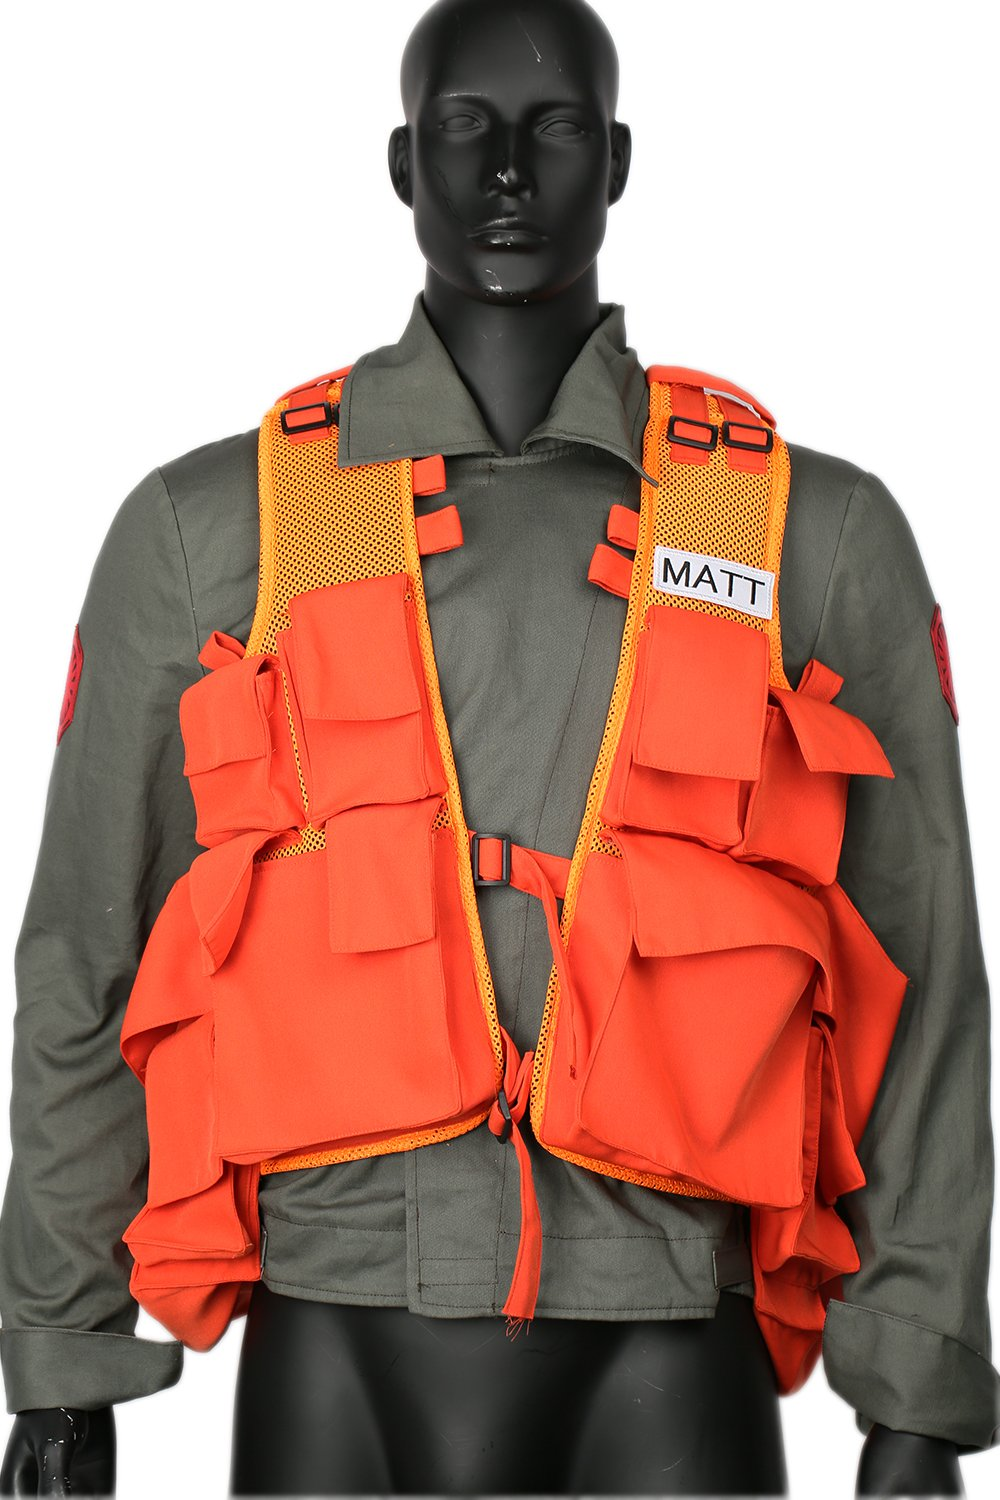 Matt Radar Technician Vest